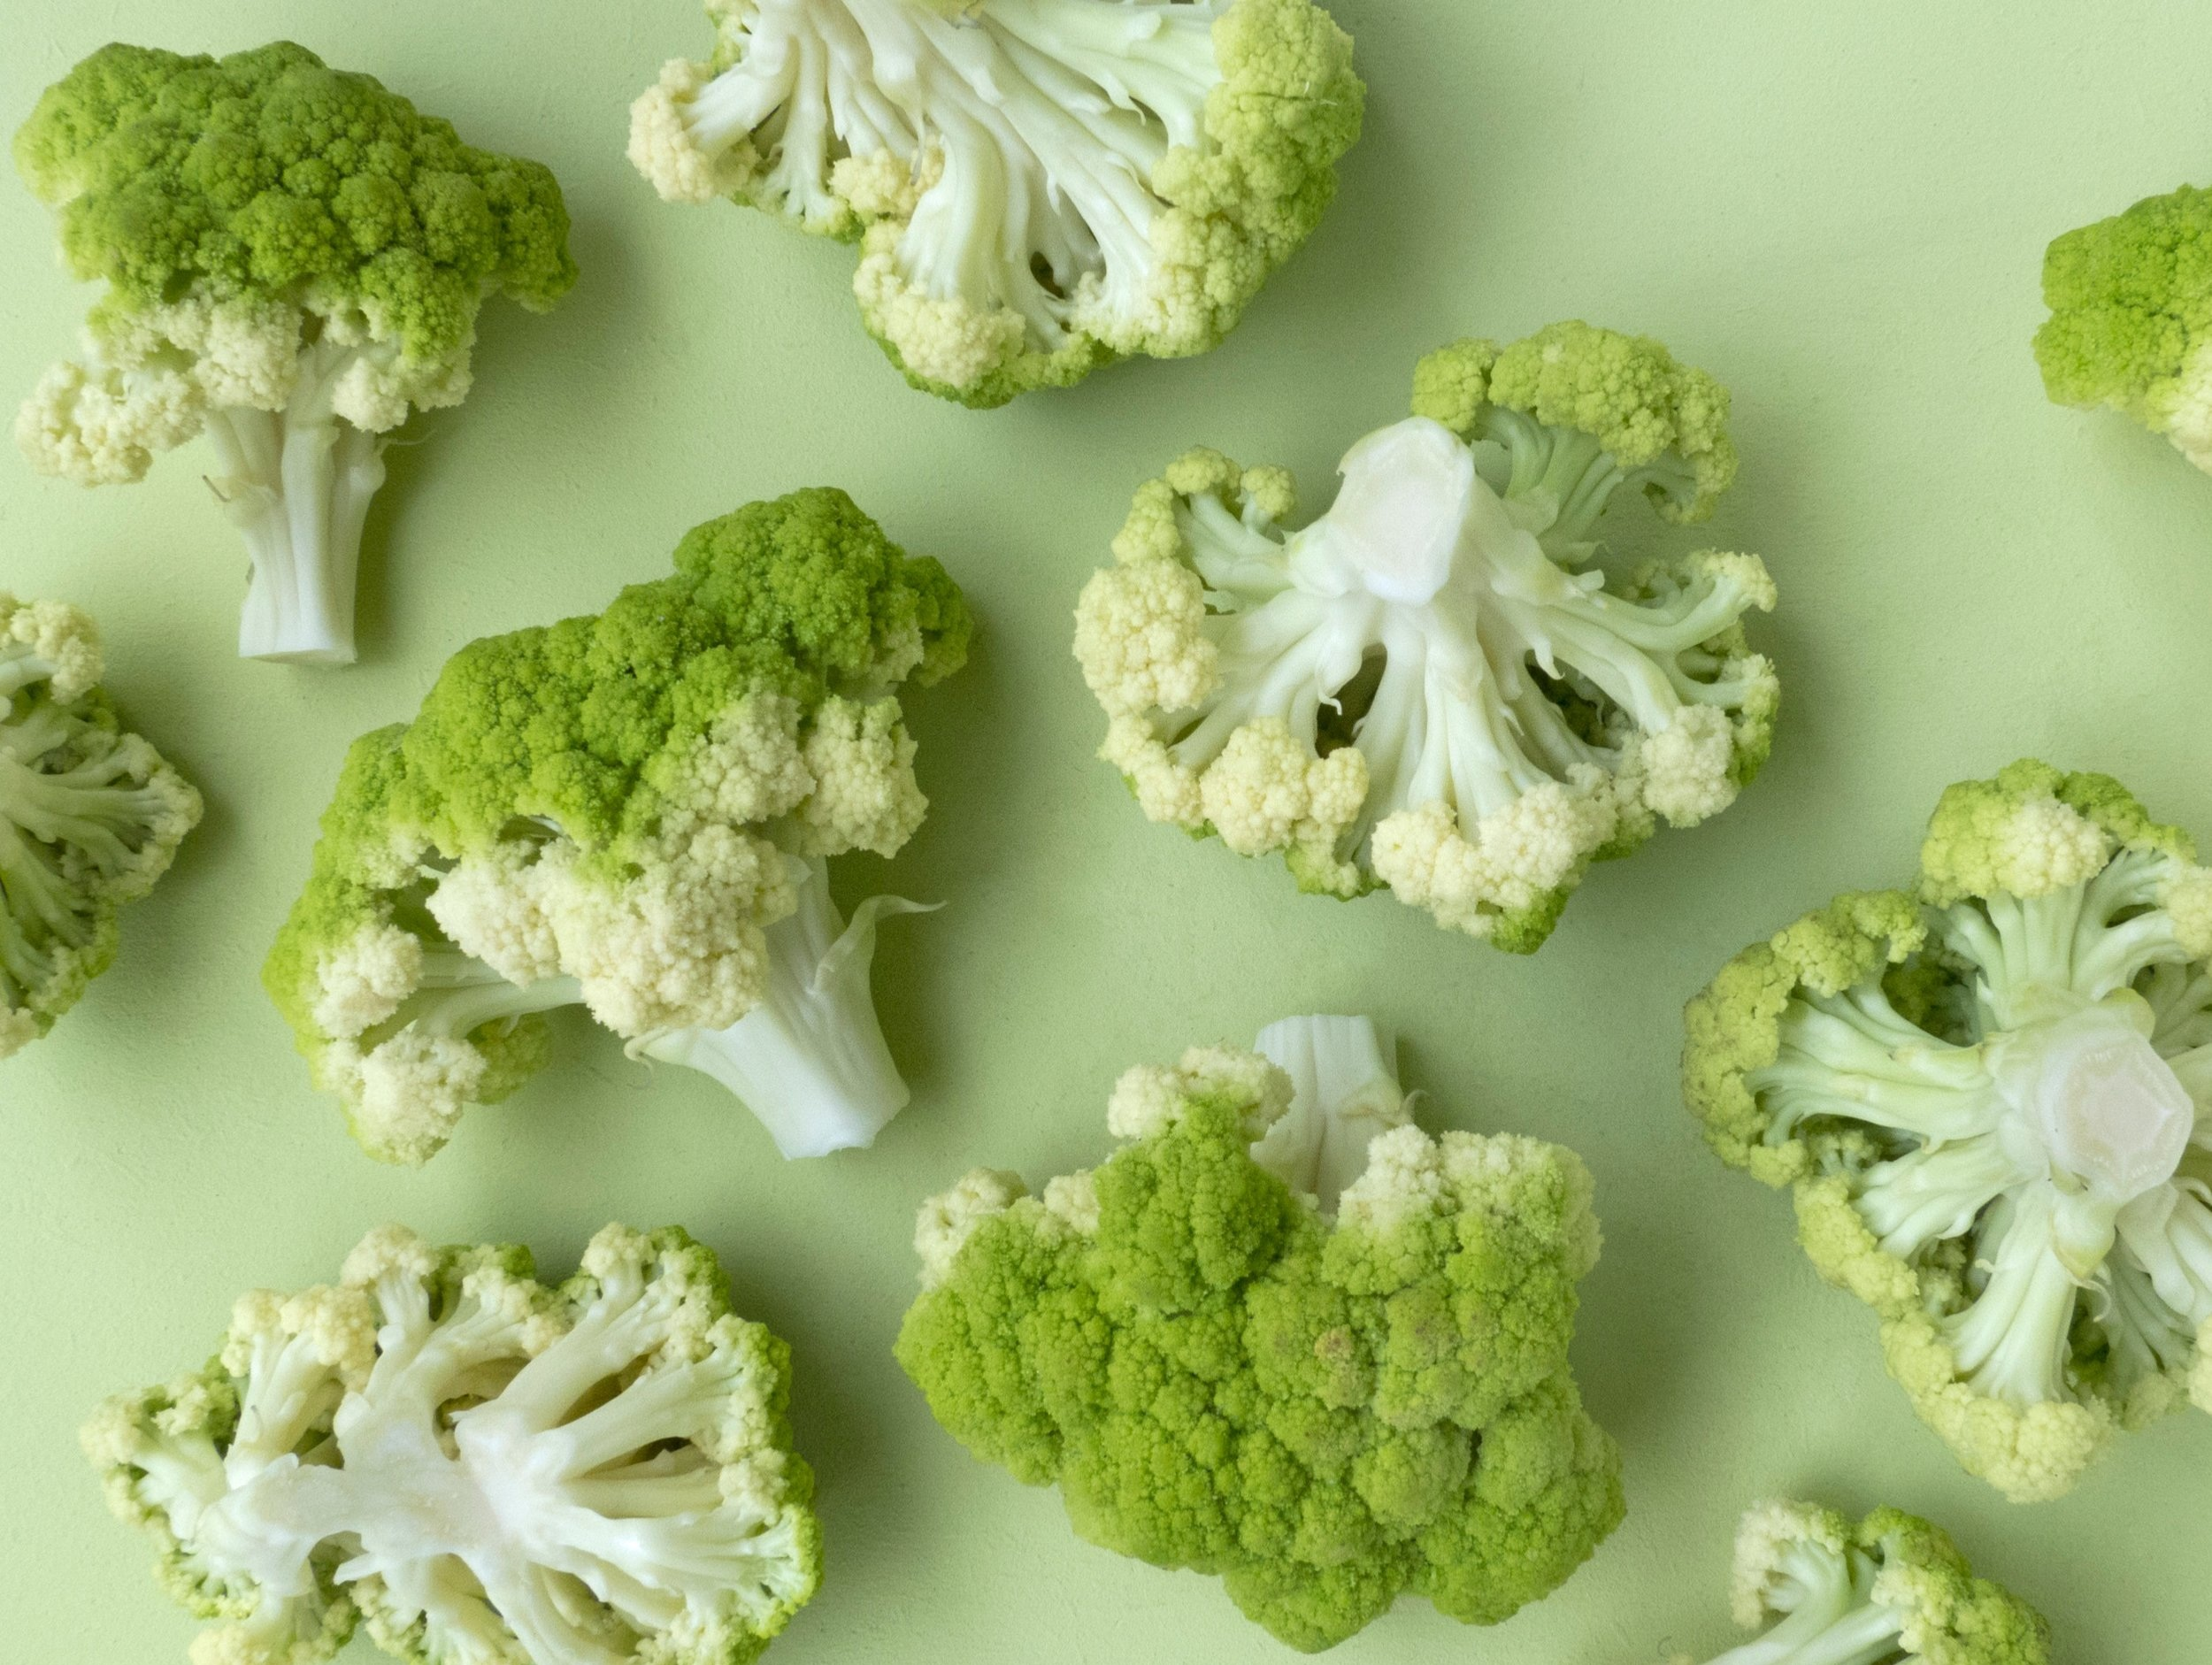 broccoli - 70 percent of broccoli samples had no detectable pesticide residues.Only one in ten broccoli samples contained more than one pesticide residue.